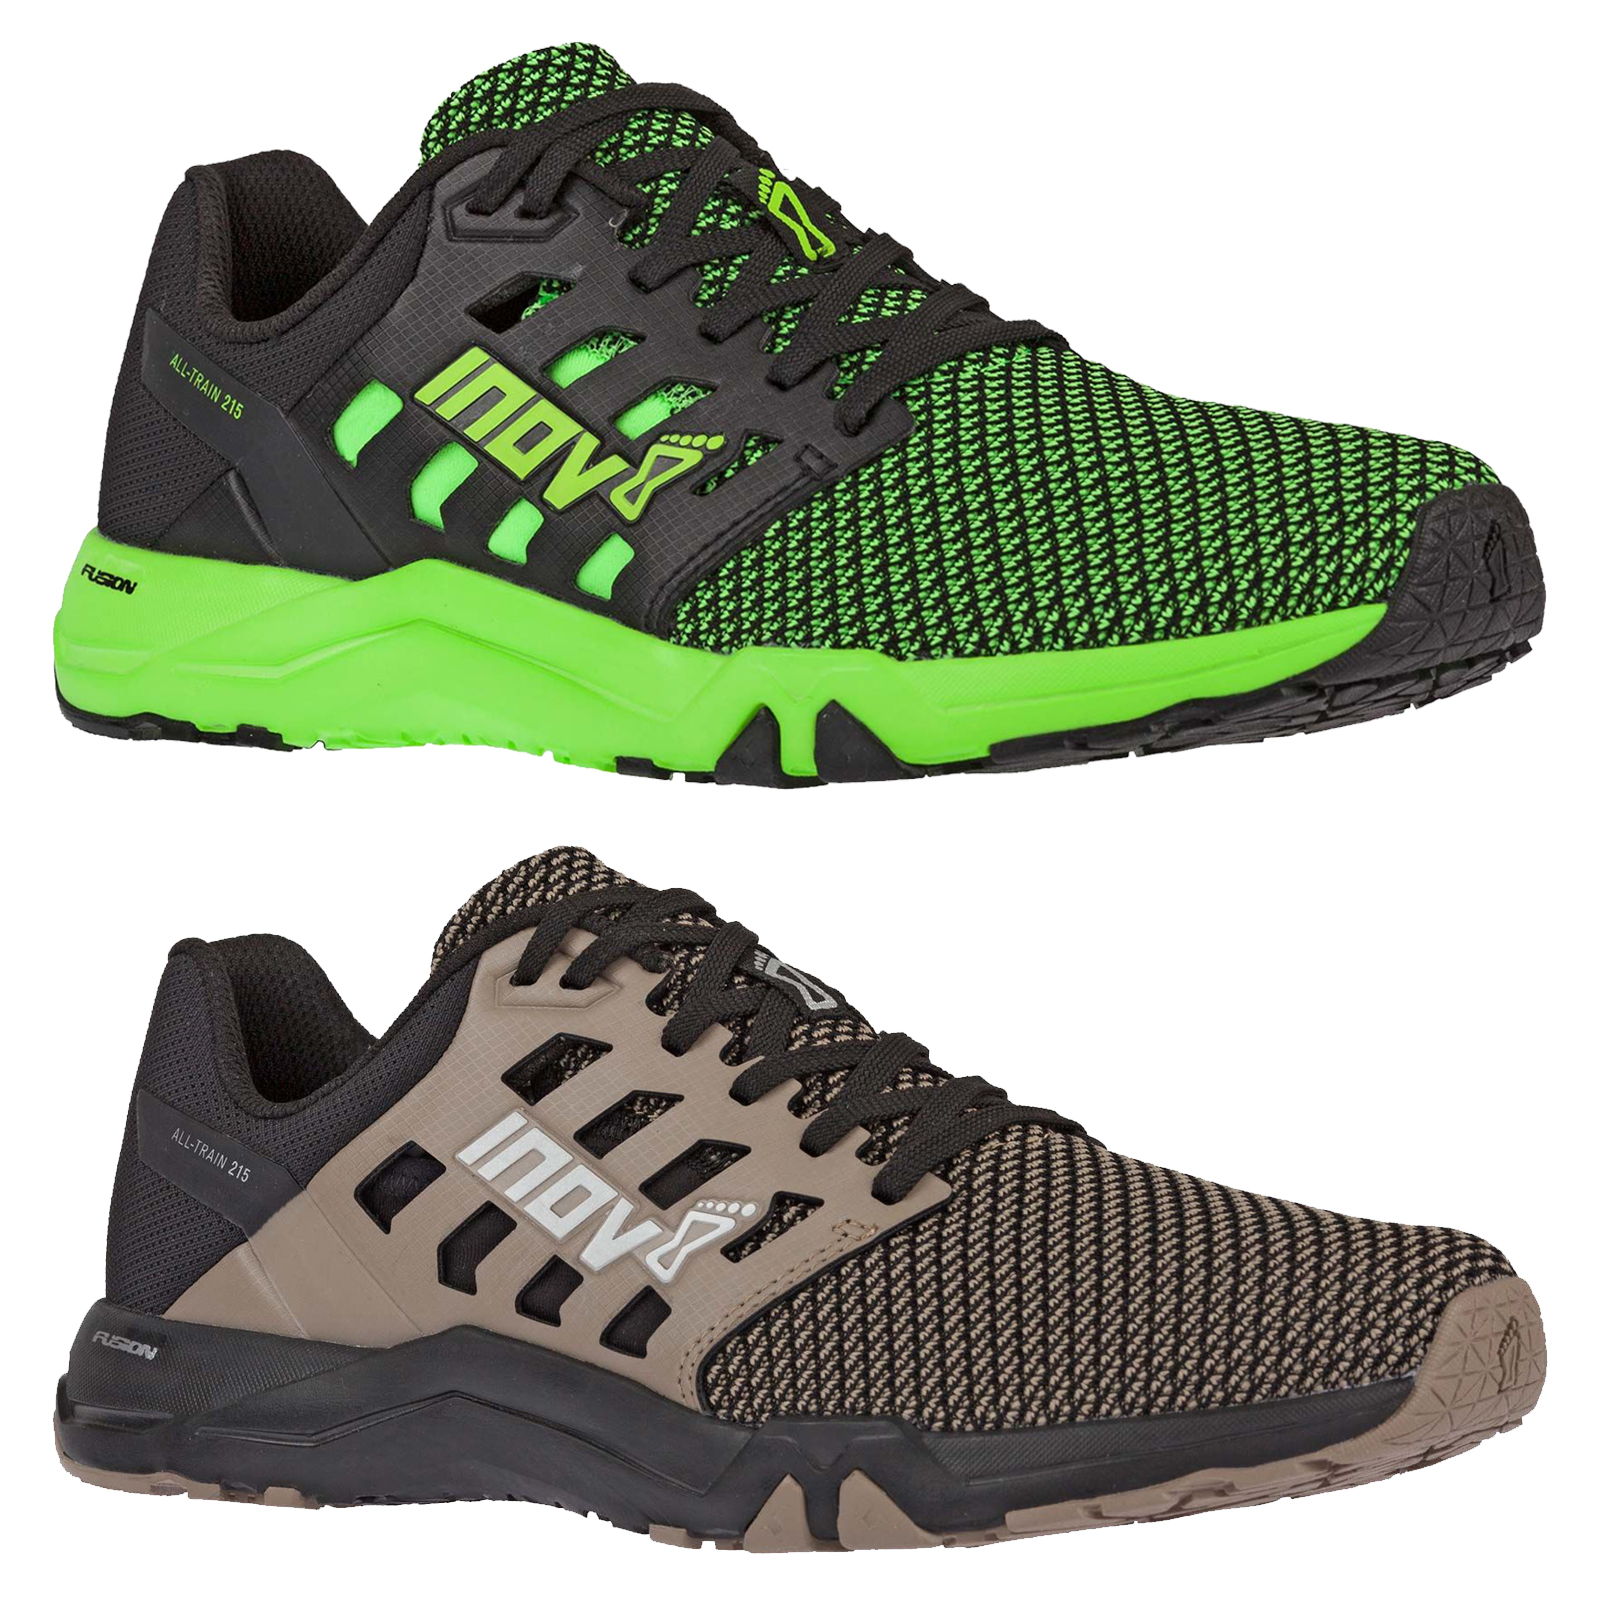 Details about Inov 8 All Train 215 Knit Mens Cross Training Gym Workout Running Sneakers Shoes